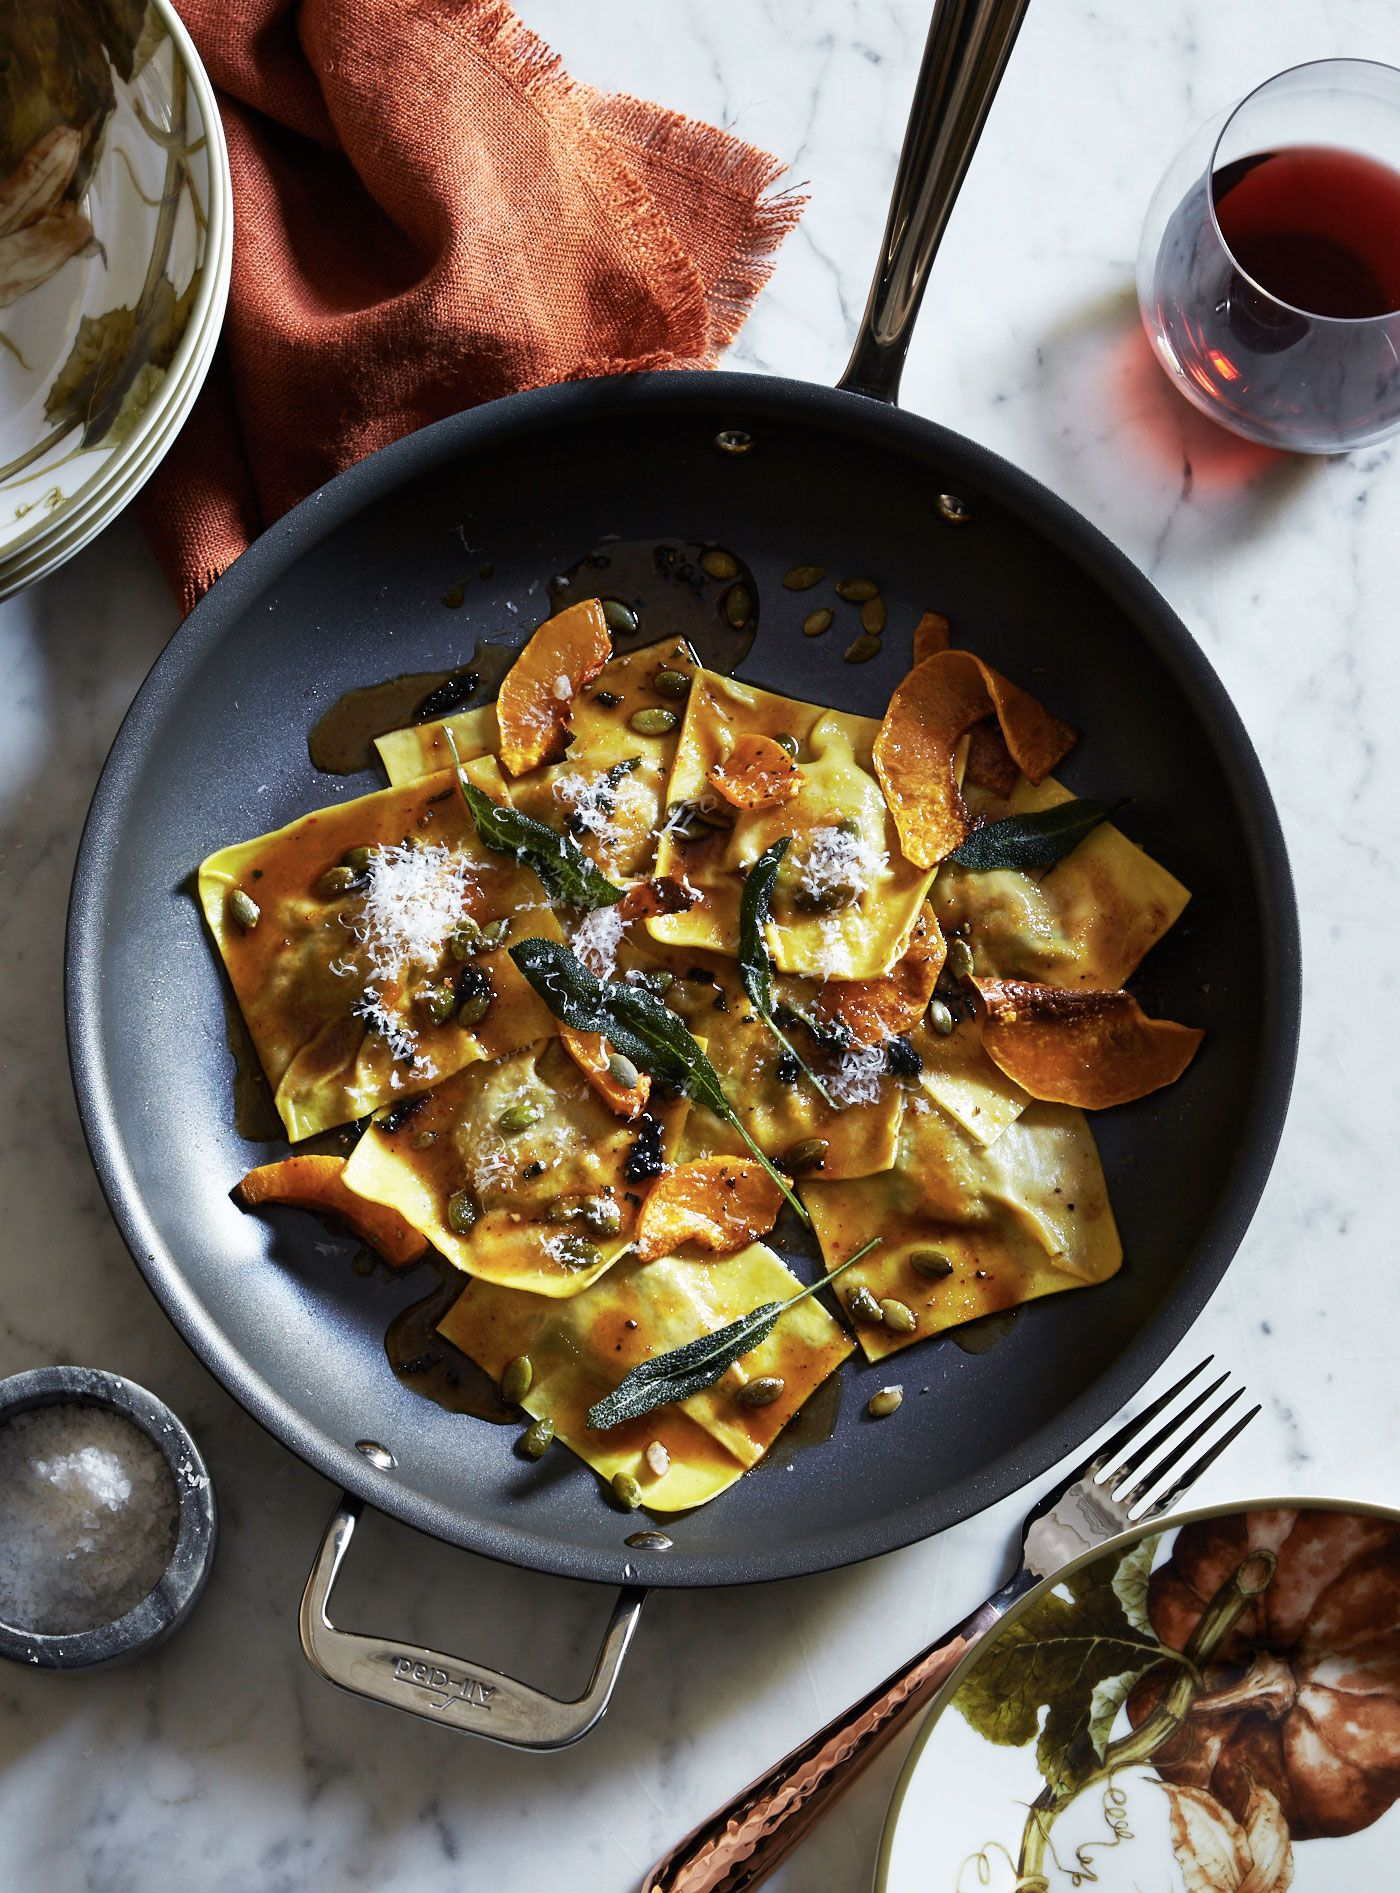 Fall Pasta Dinner: Butternut Squash Ravioli With Brown Butter And Sage